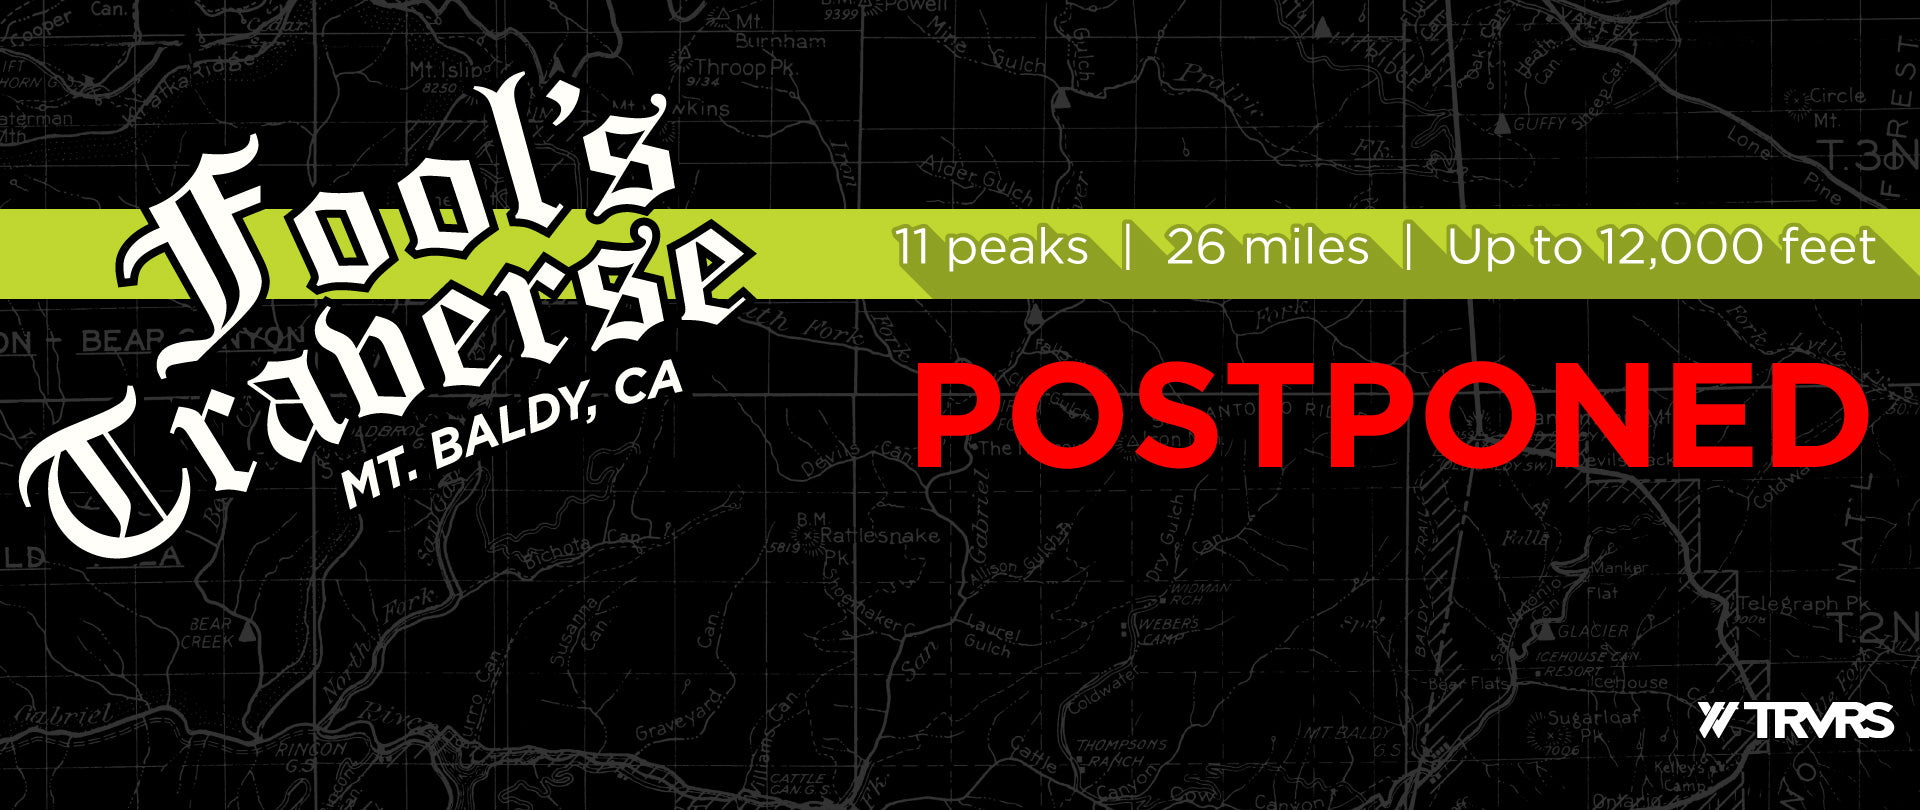 Fool's Traverse Postponed - Web header | TRVRS Outdoors